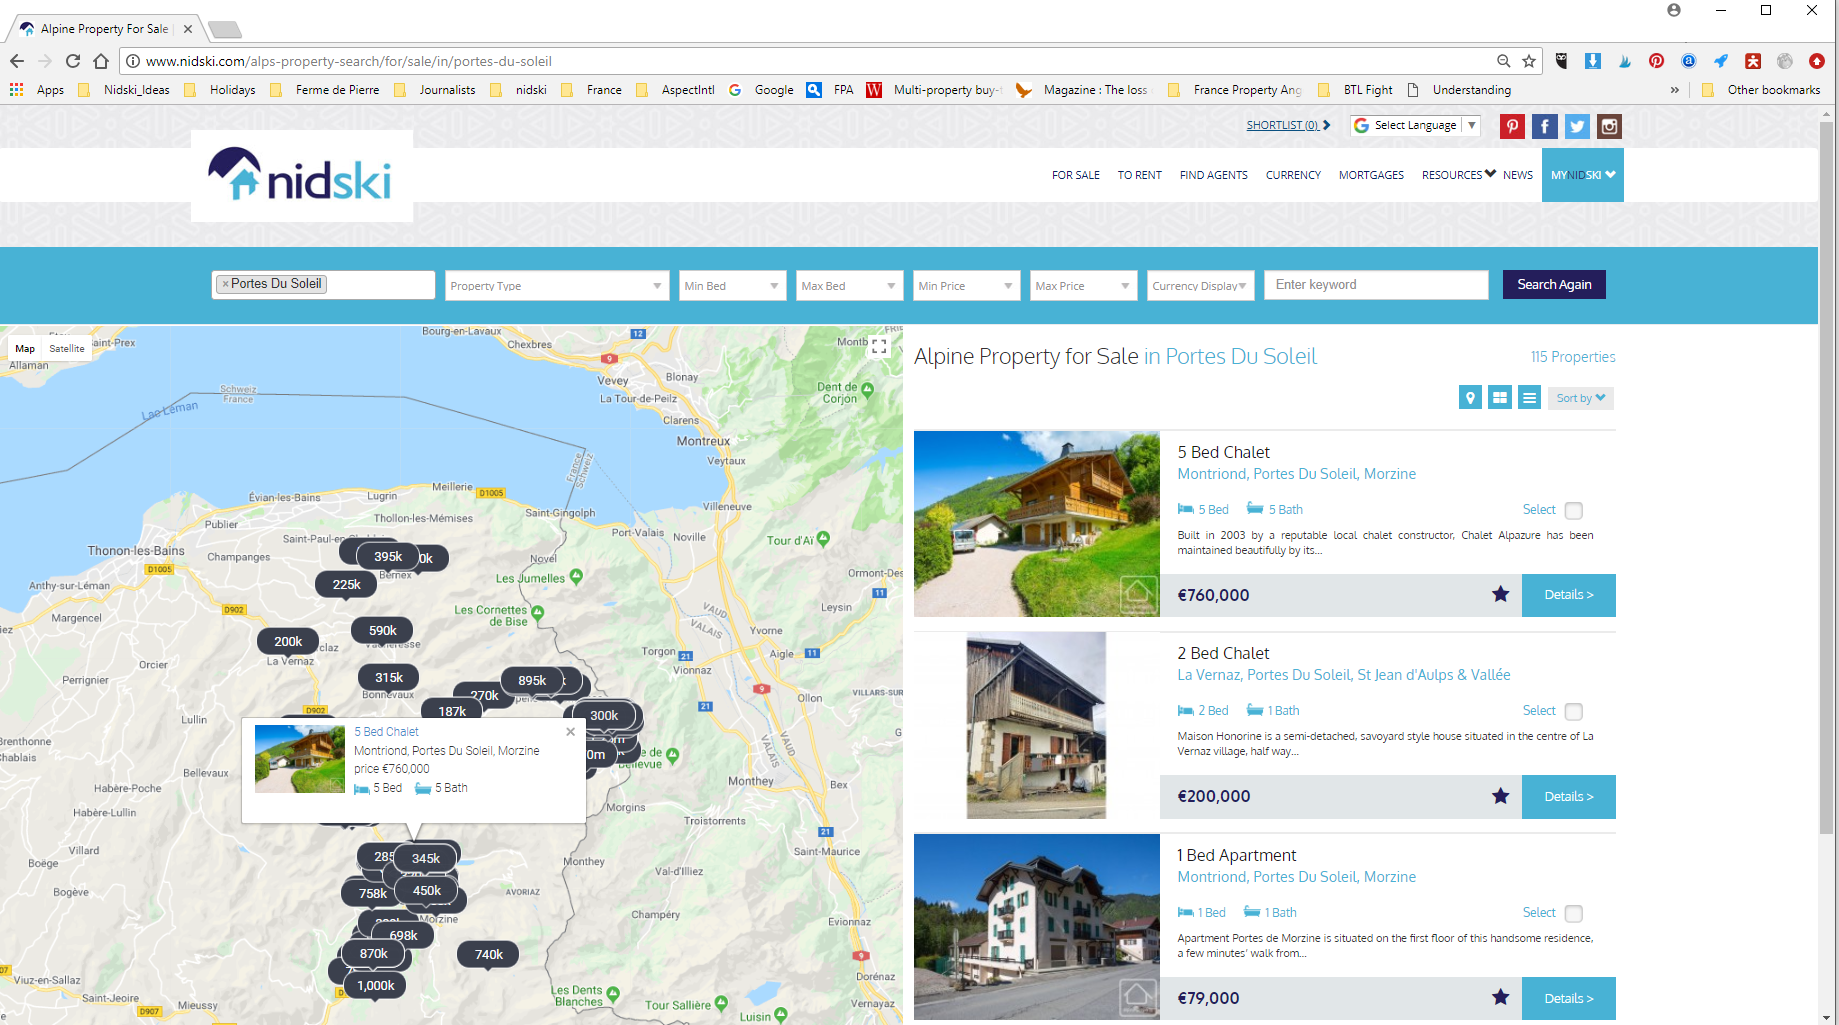 Find Your nidski - How To Guide To Finding Your Dream Ski Property On nidski.com